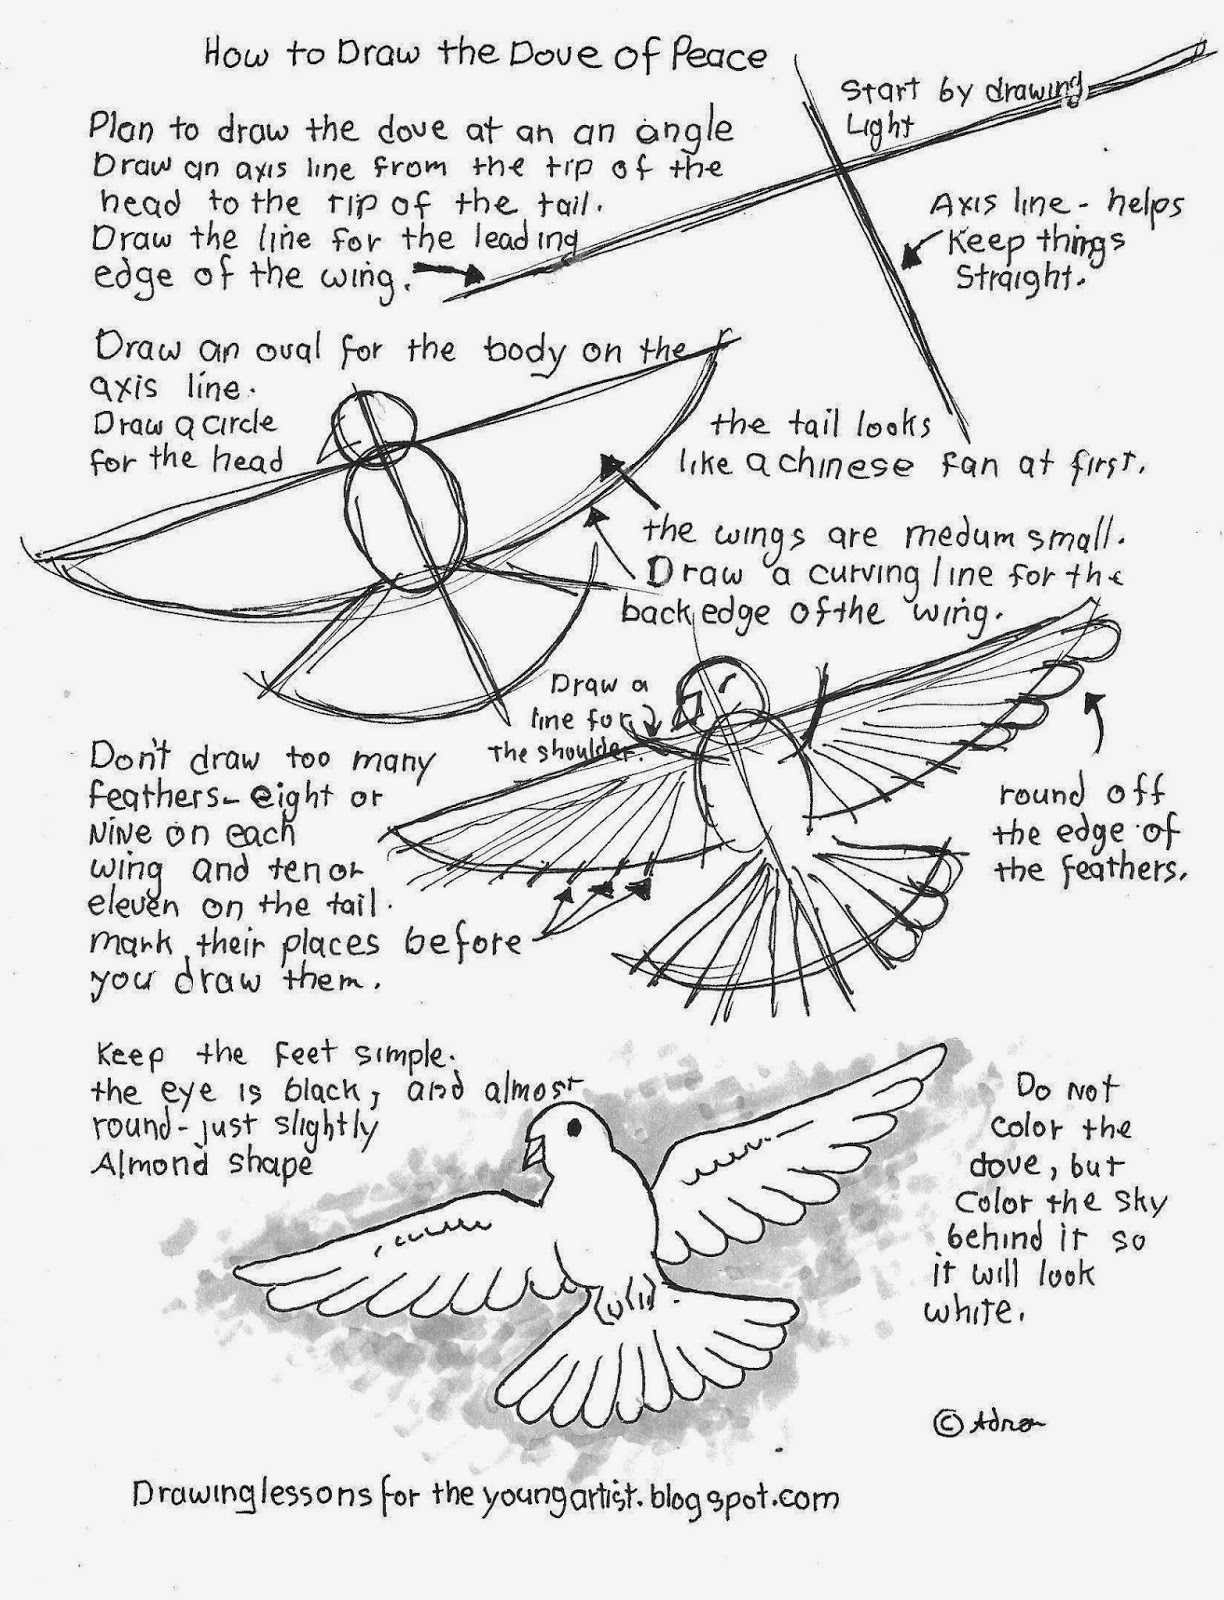 worksheet How To Draw Printable Worksheets how to draw worksheets for the young artist dove of free a peace worksheet